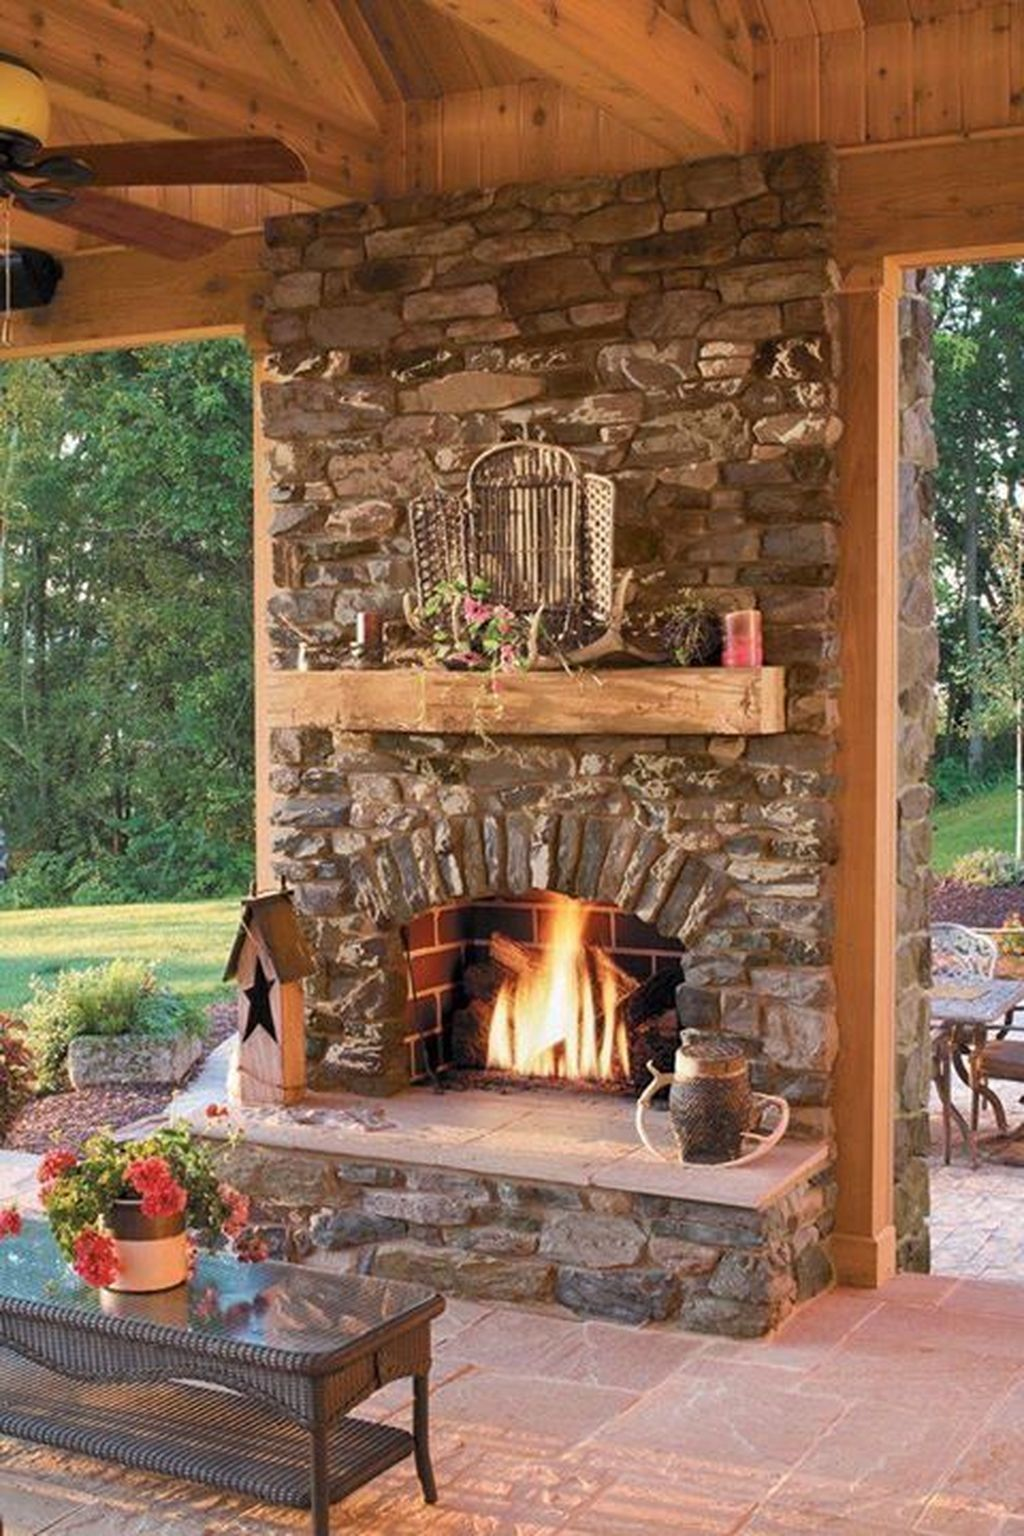 Simple Outdoor Living Spaces Design Ideas With Fireplace ... on Simple Outdoor Living id=40763